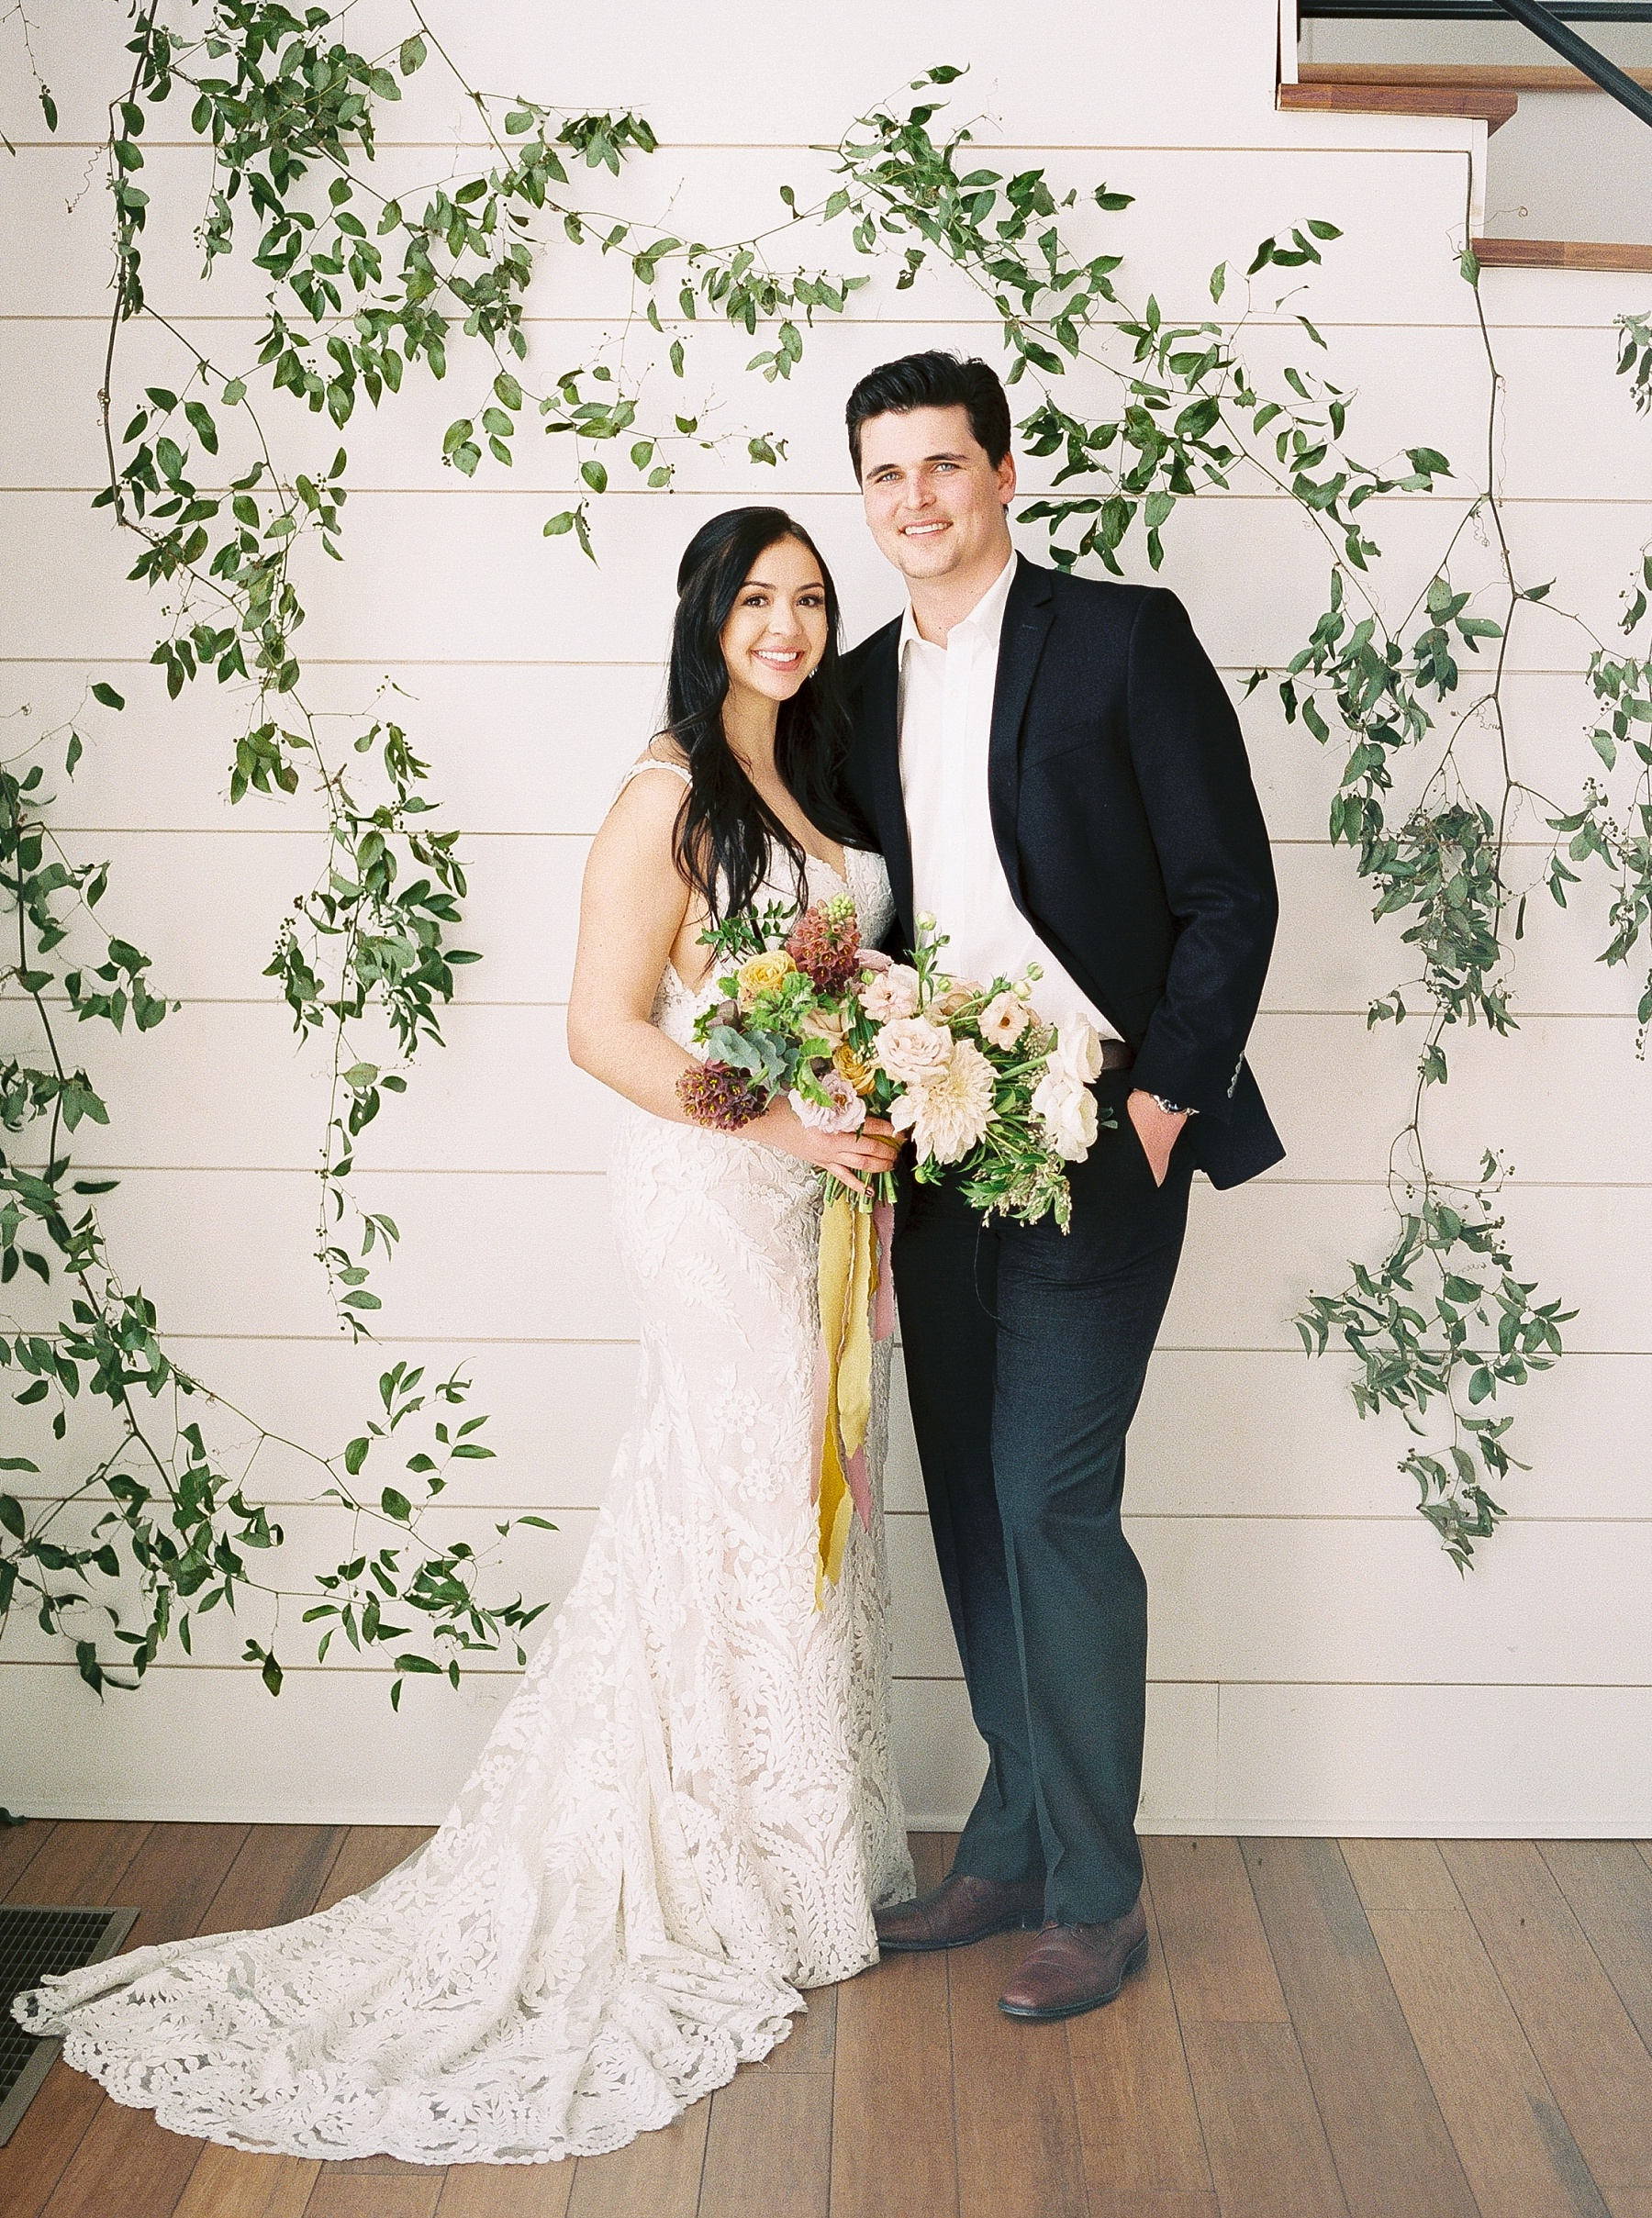 Lakeside Sunset Wedding with Magnificent Abundance of Blooms at Emerson Fields by Kelsi Kliethermes Photography Best Missouri and Maui Wedding Photographer_0022.jpg